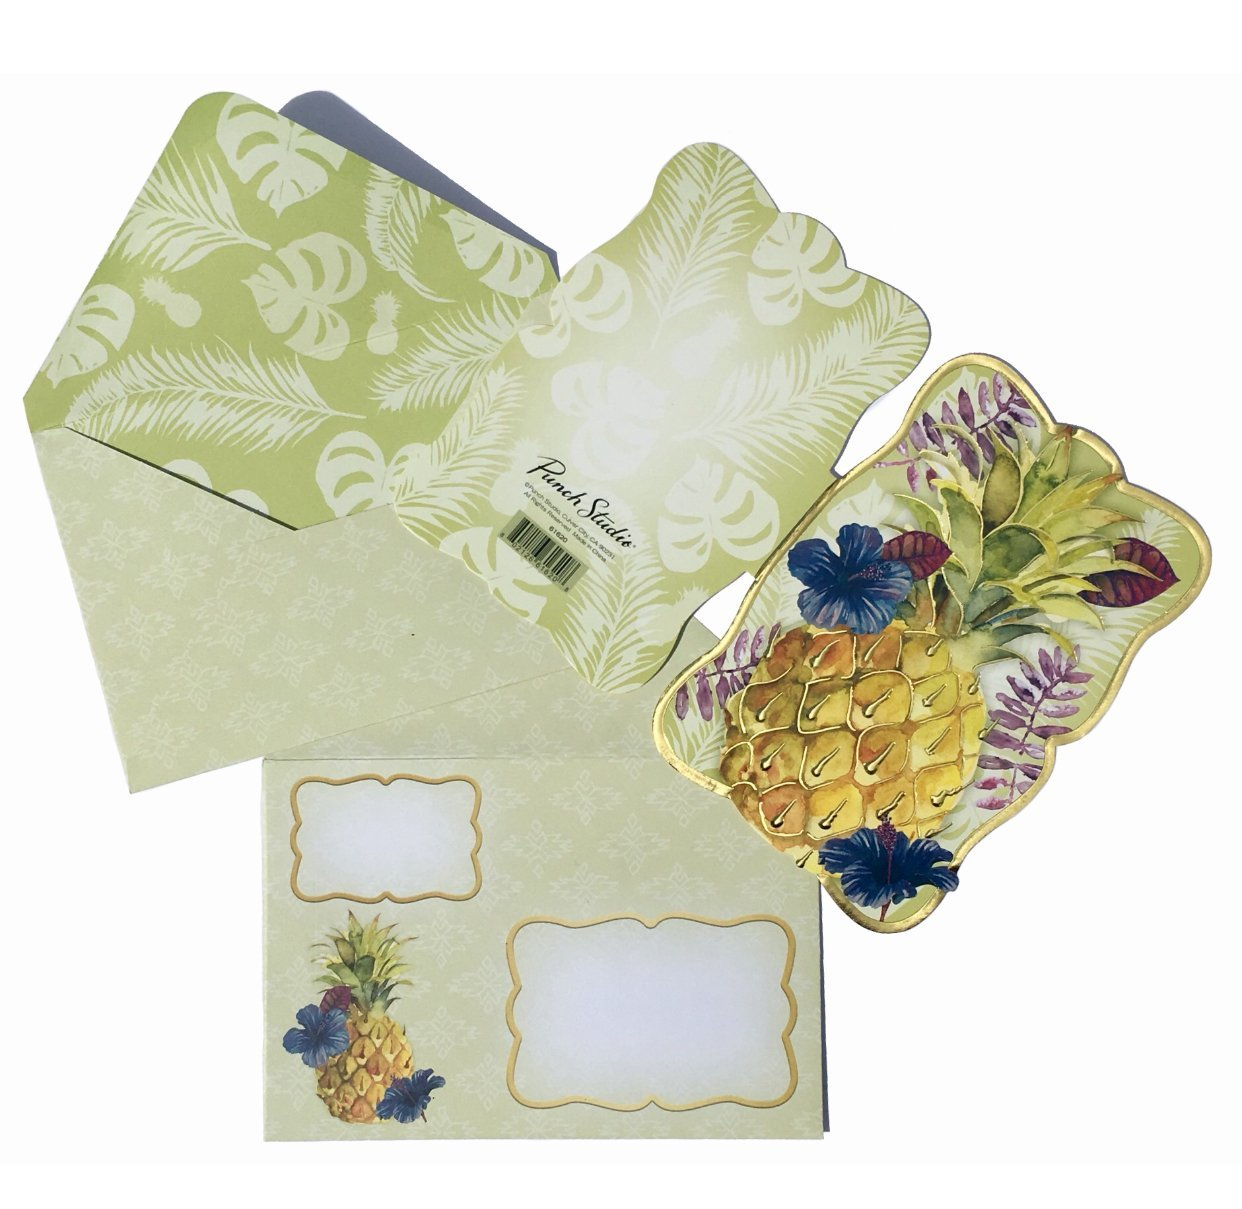 Cheap Fancy Note Book Find Deals On Line At Alibabacom Goospery Samsung 8 Diary Case Navy Lime Get Quotations Punch Studio Set Of 10 Gold Foil Embellished Blank Cards Die Cut